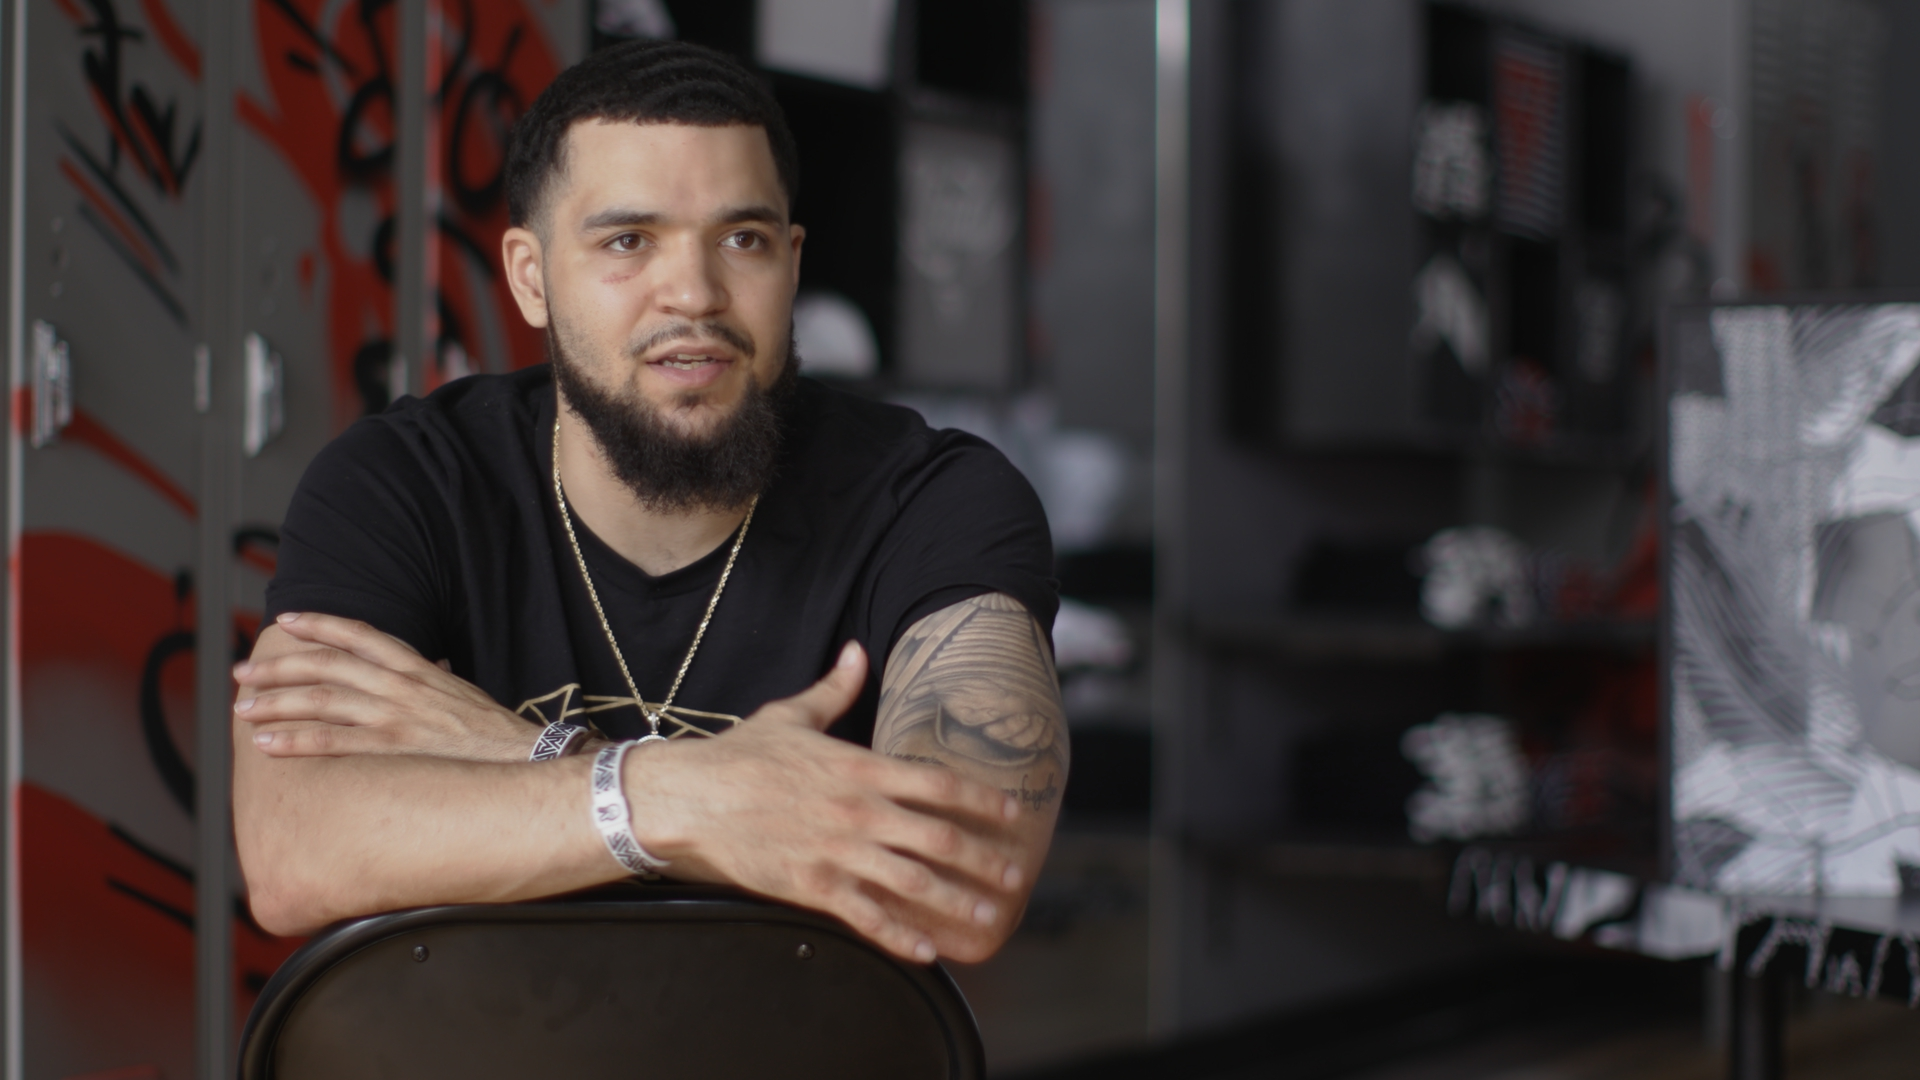 Rogers Sports Net Fred VanVleet 1.1.1 1 Go To Team Chicago Crew | Fred VanVleets New Clothing Brand